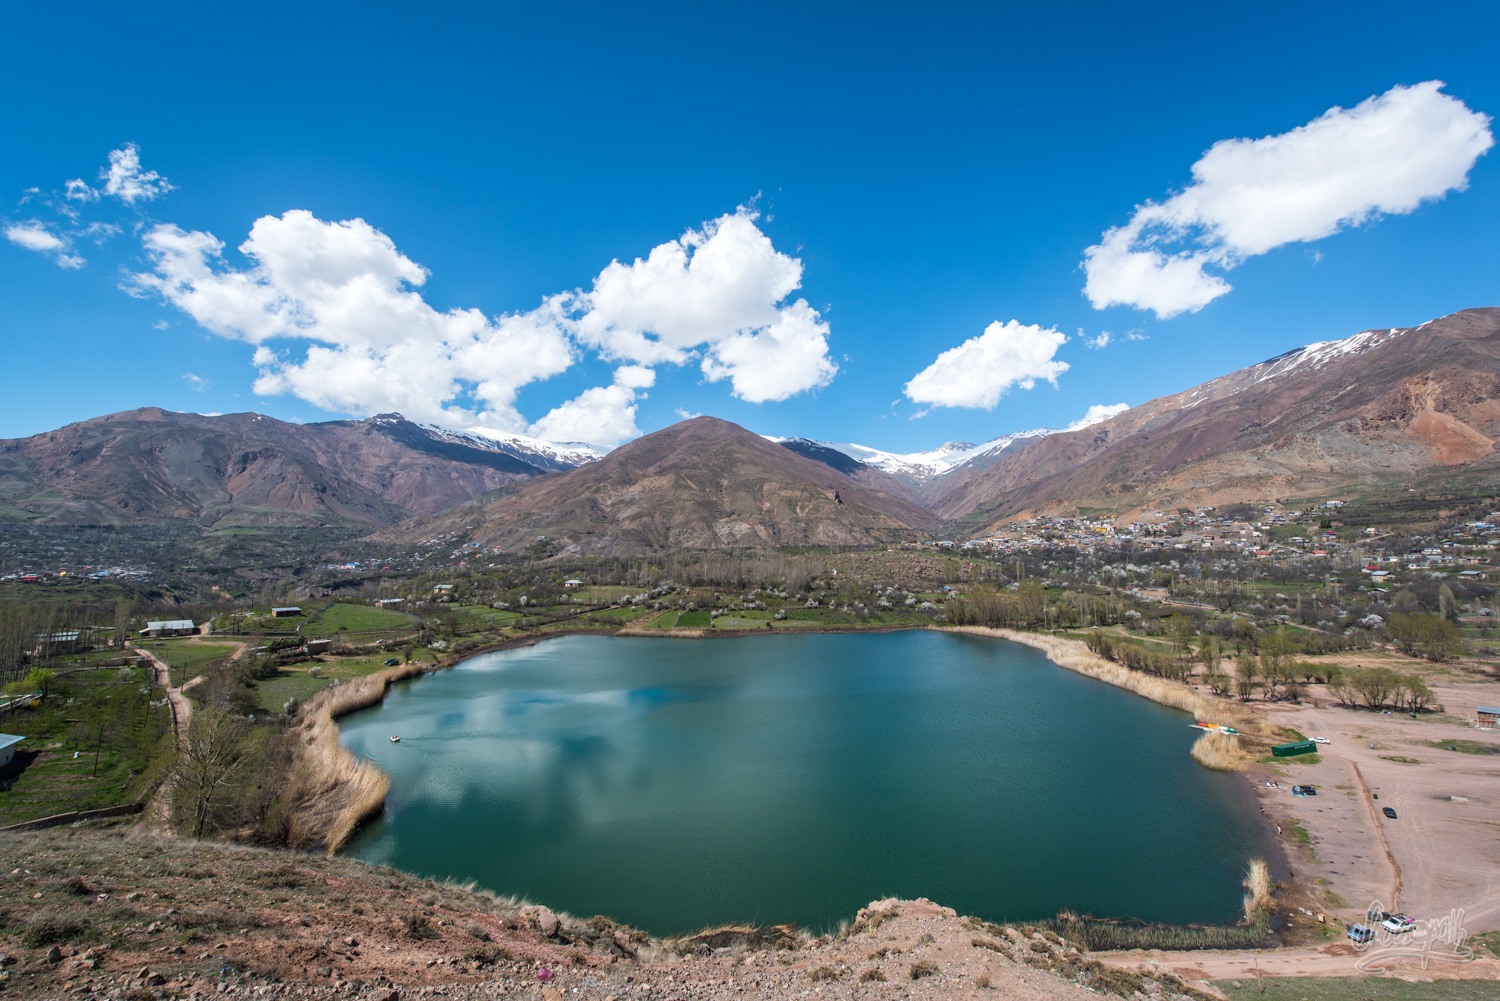 Evan Lake, in Alamut valley